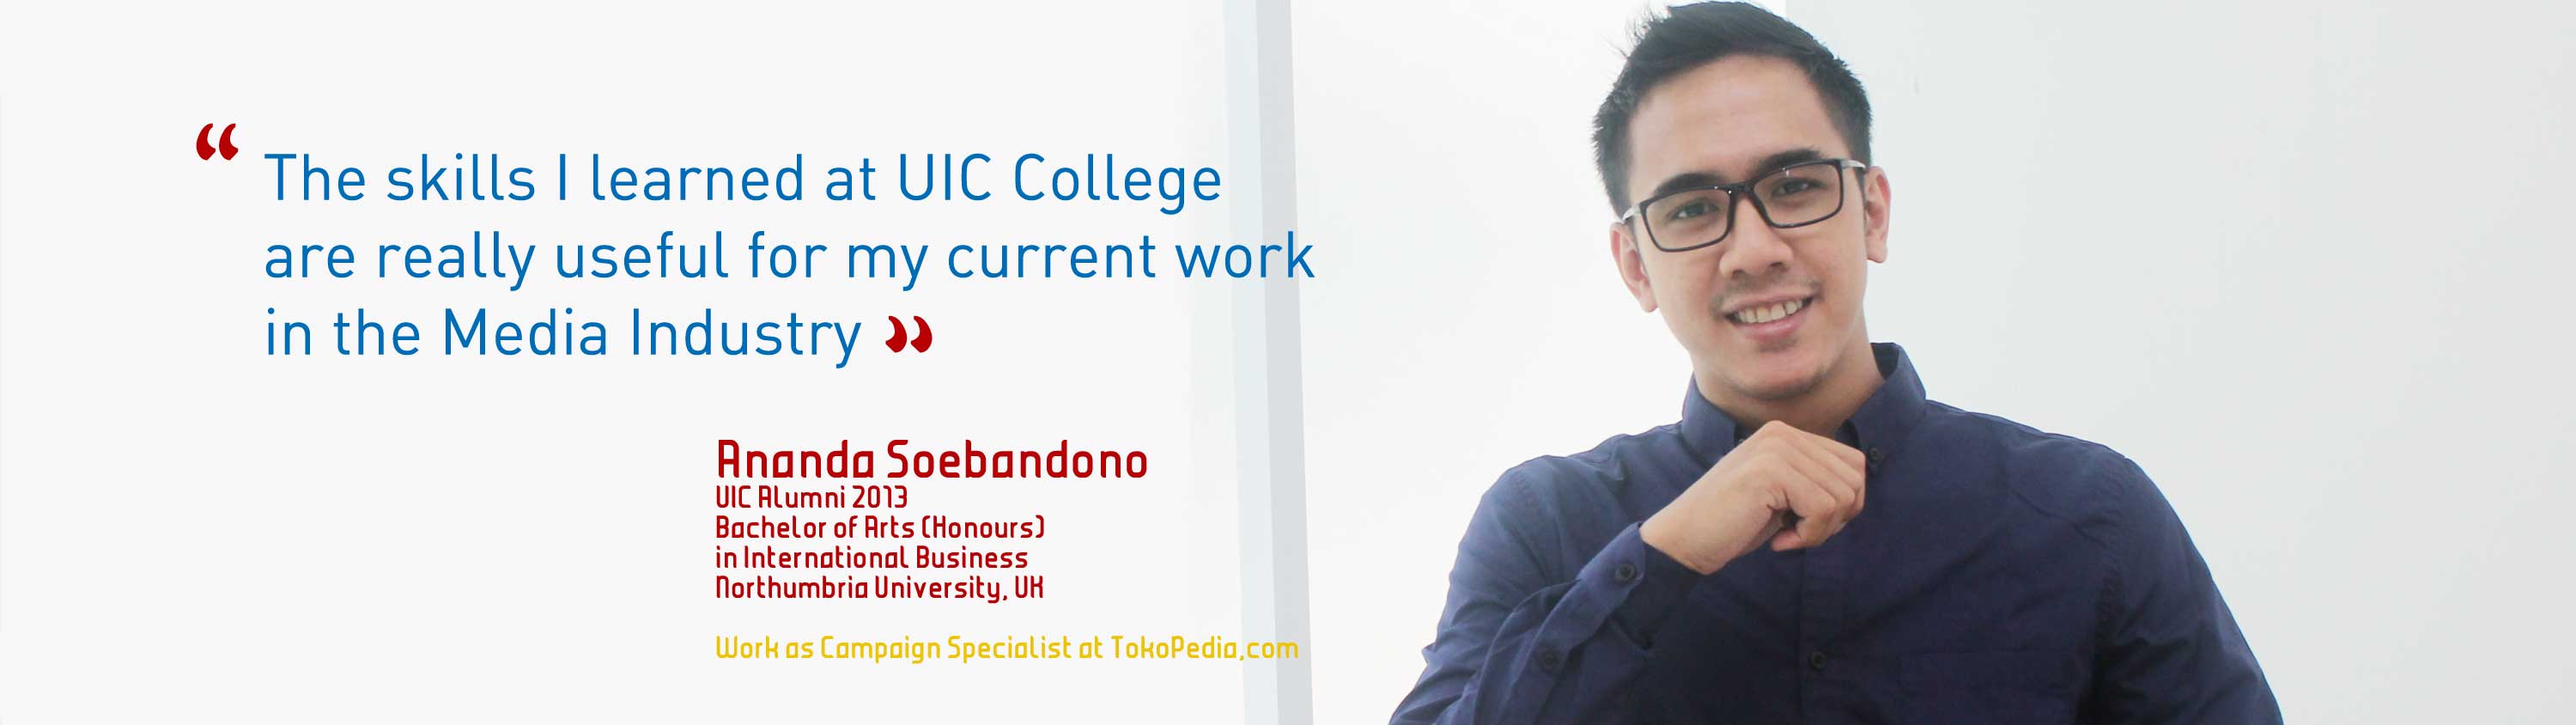 UIC-Business-Banner-02